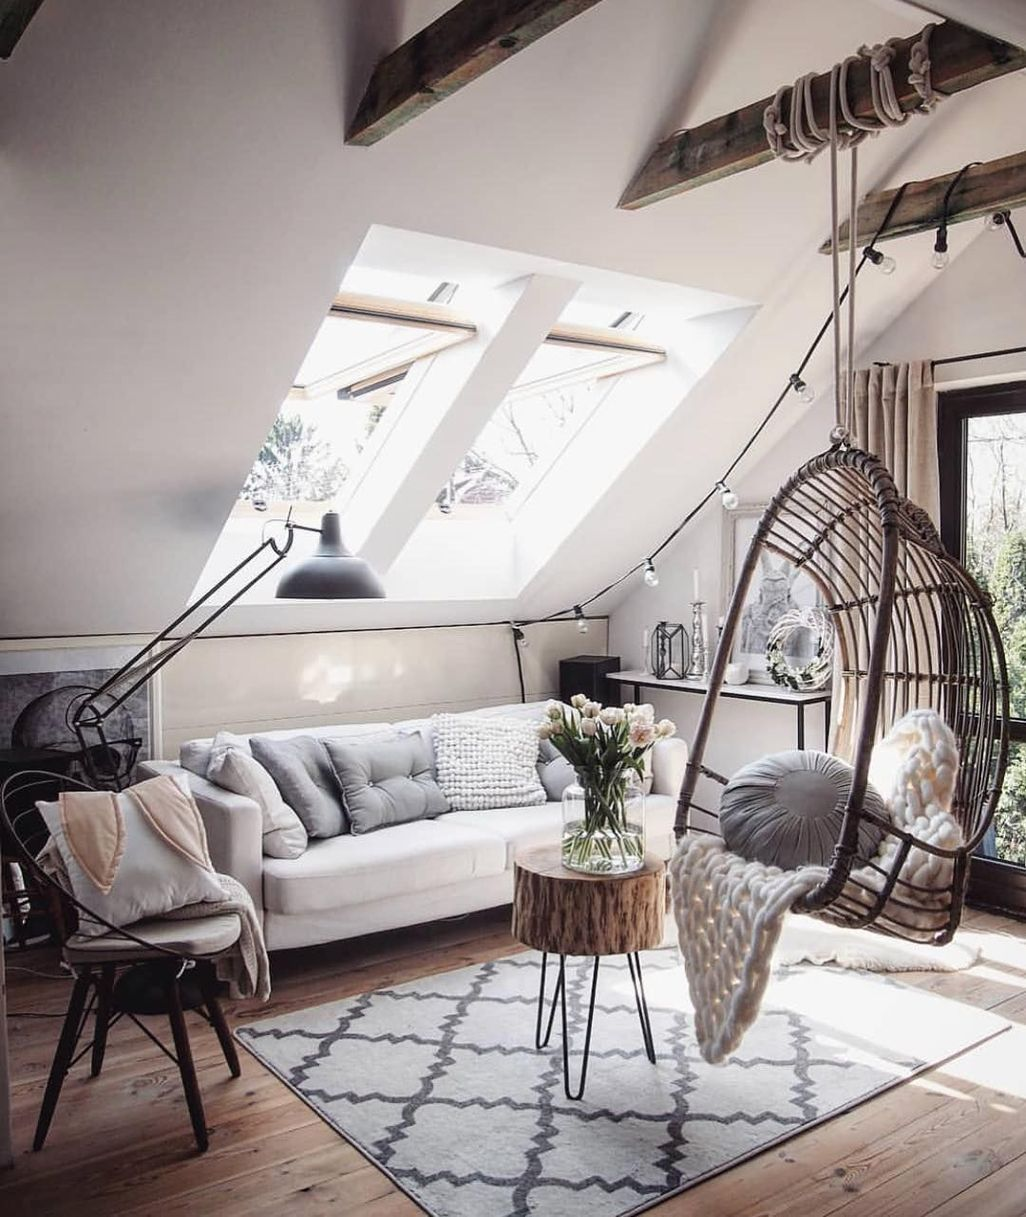 41 Modern Hanging Swing Chair Stand Indoor Decor Minimalism Interior Hanging Swing Chair Interior Design